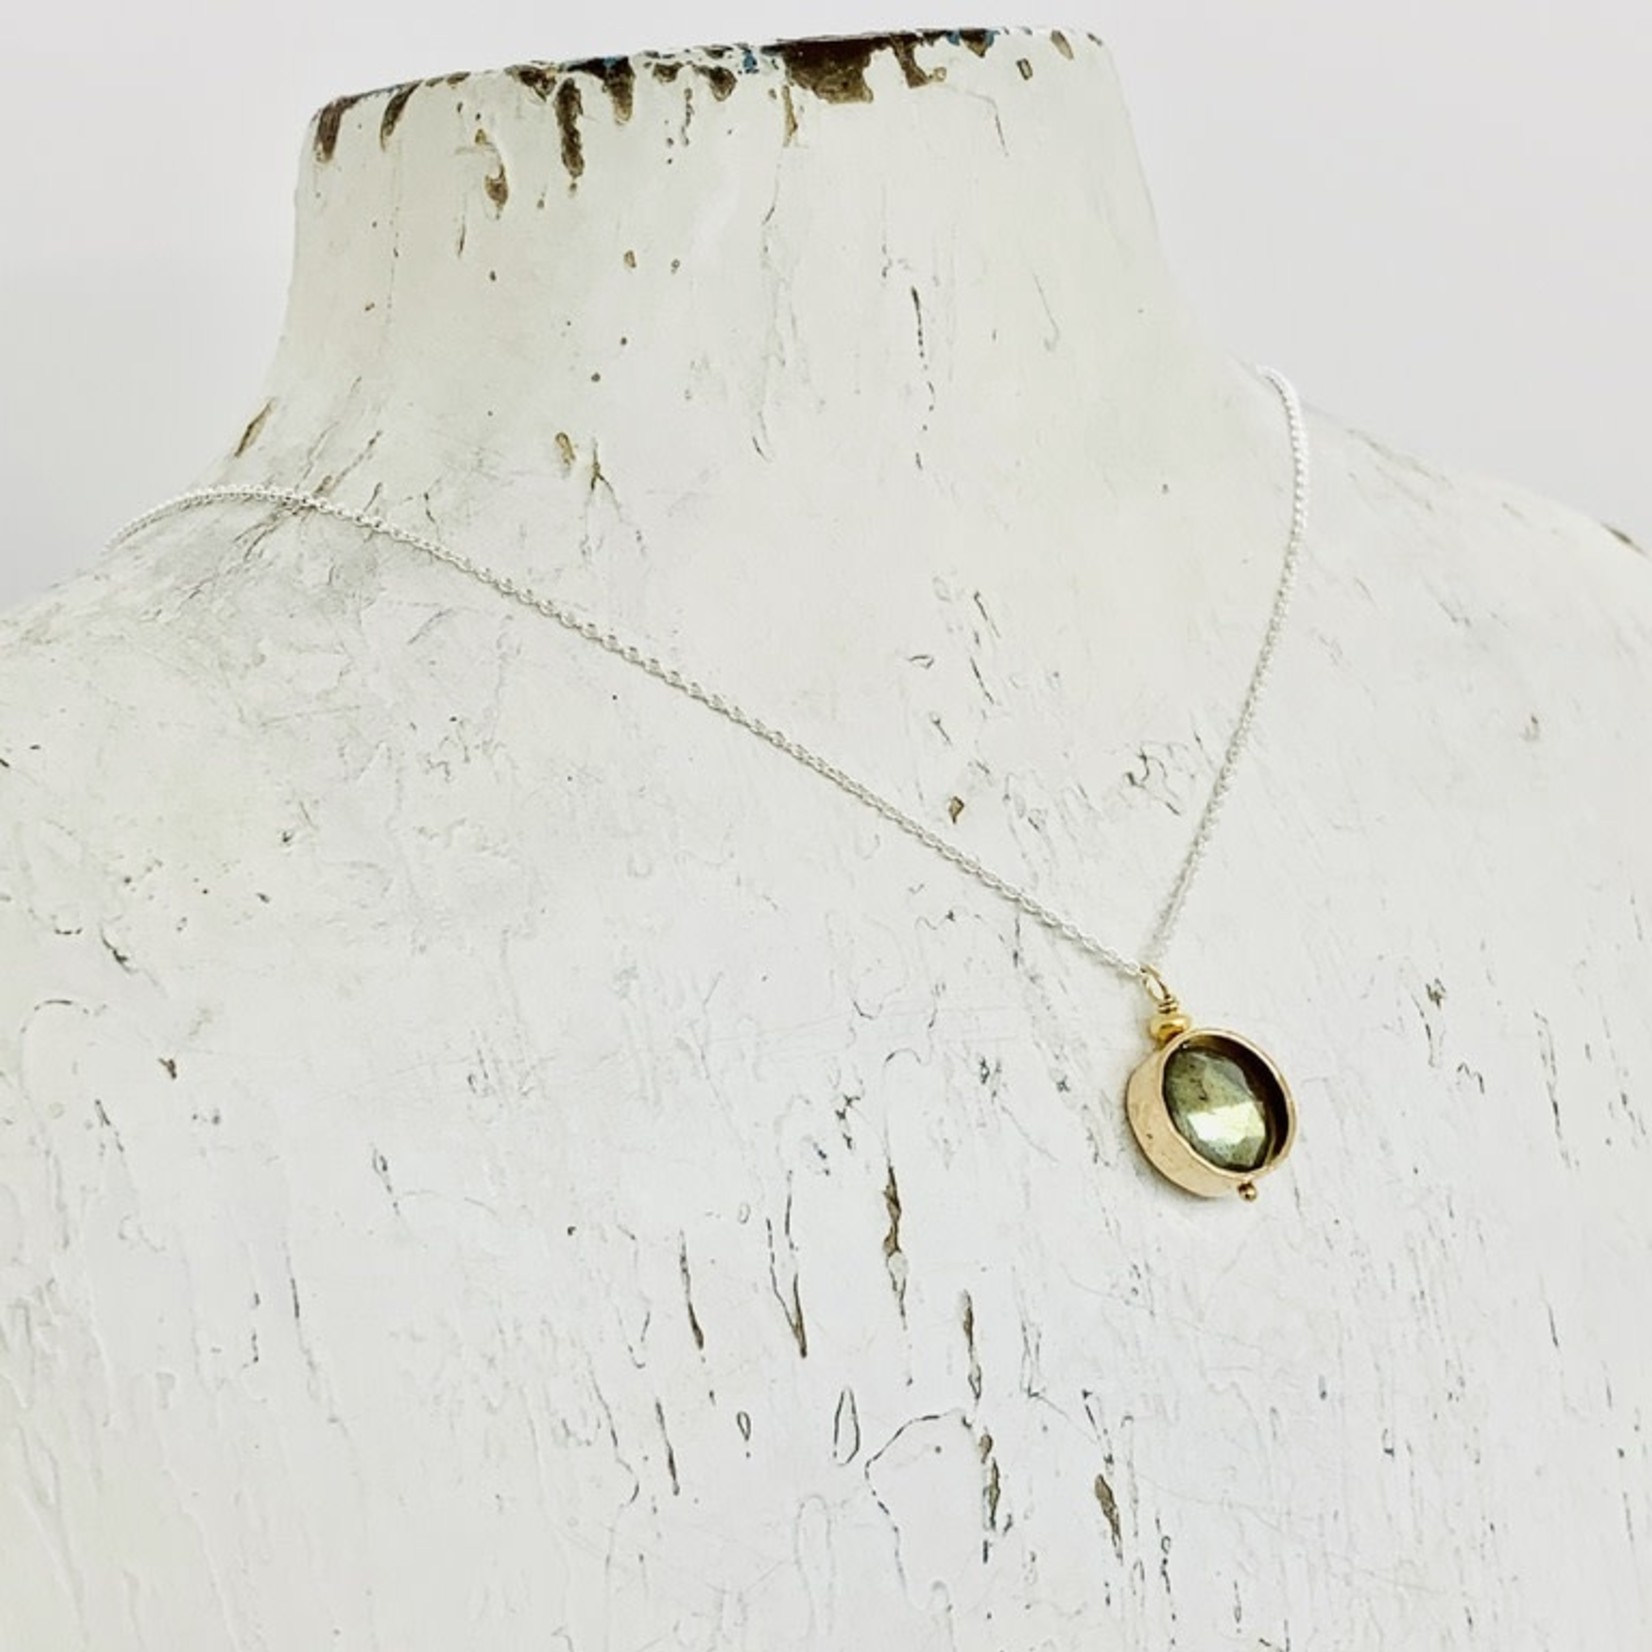 Handmade Necklace with 8mm Faceted Labradorite Coin in 14k Gold Filled Circle on Sterling Chain